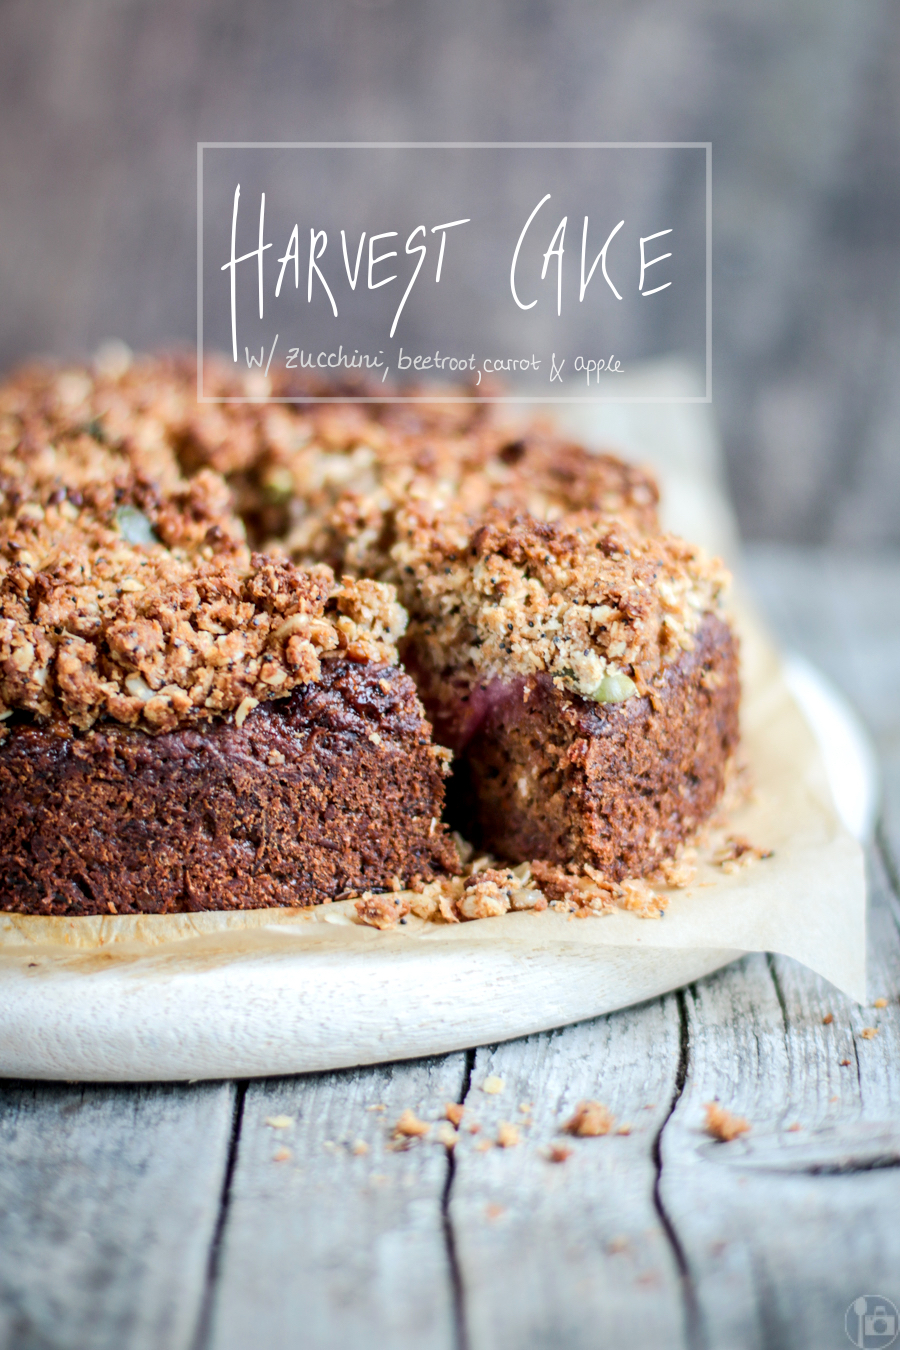 Cake with Zucchini, Beetroot, Carrot and Apple - perfect for the Harvest/Thanksgiving season